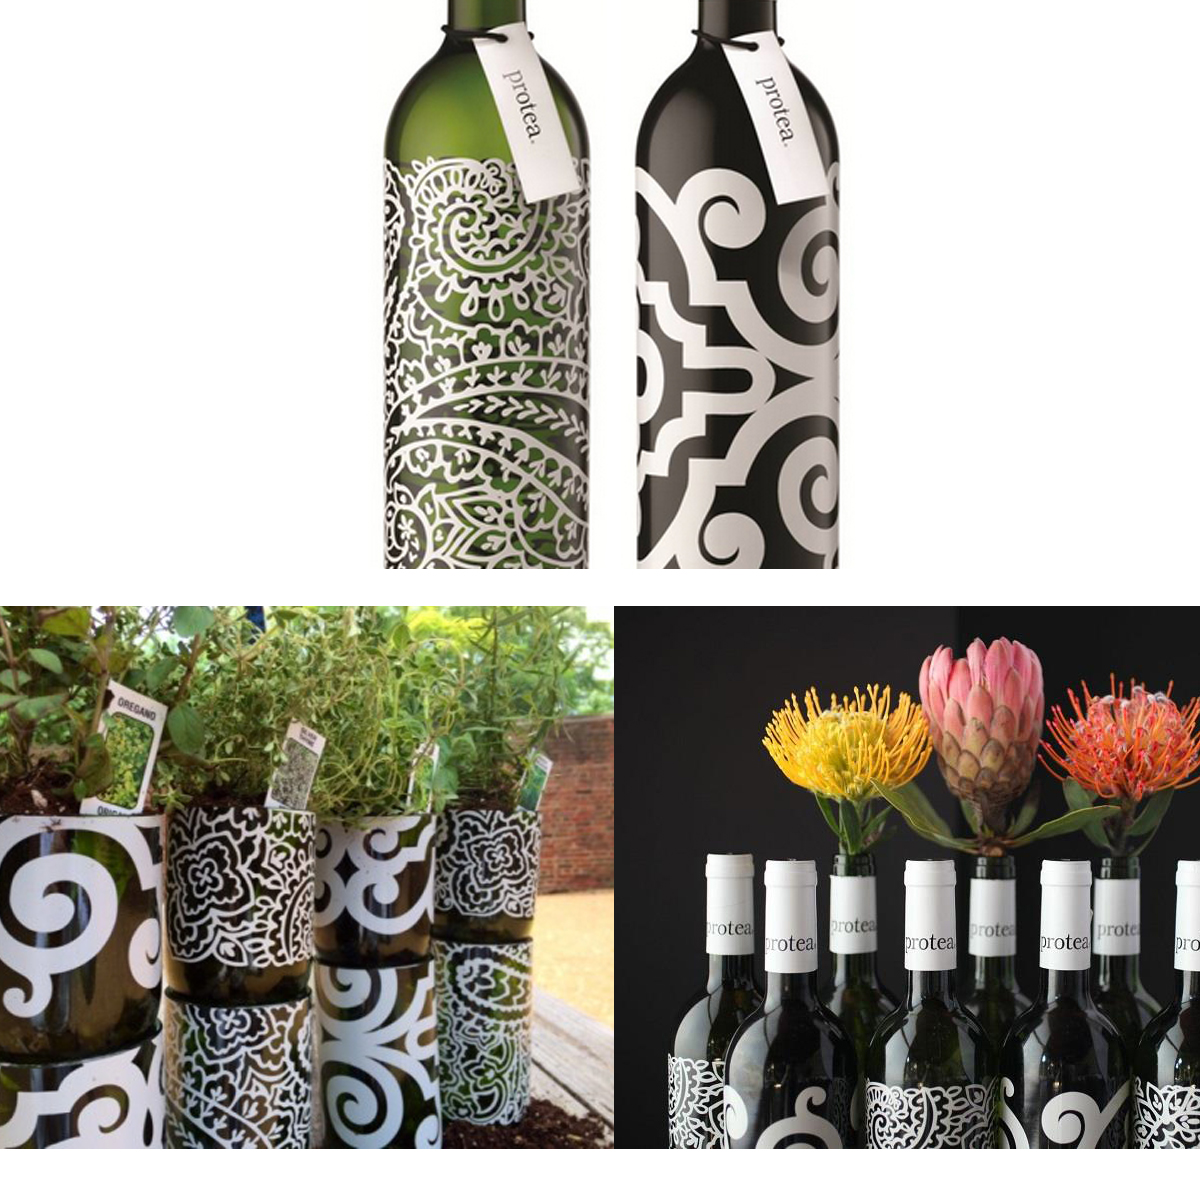 Reusable Wine Bottles by Protea